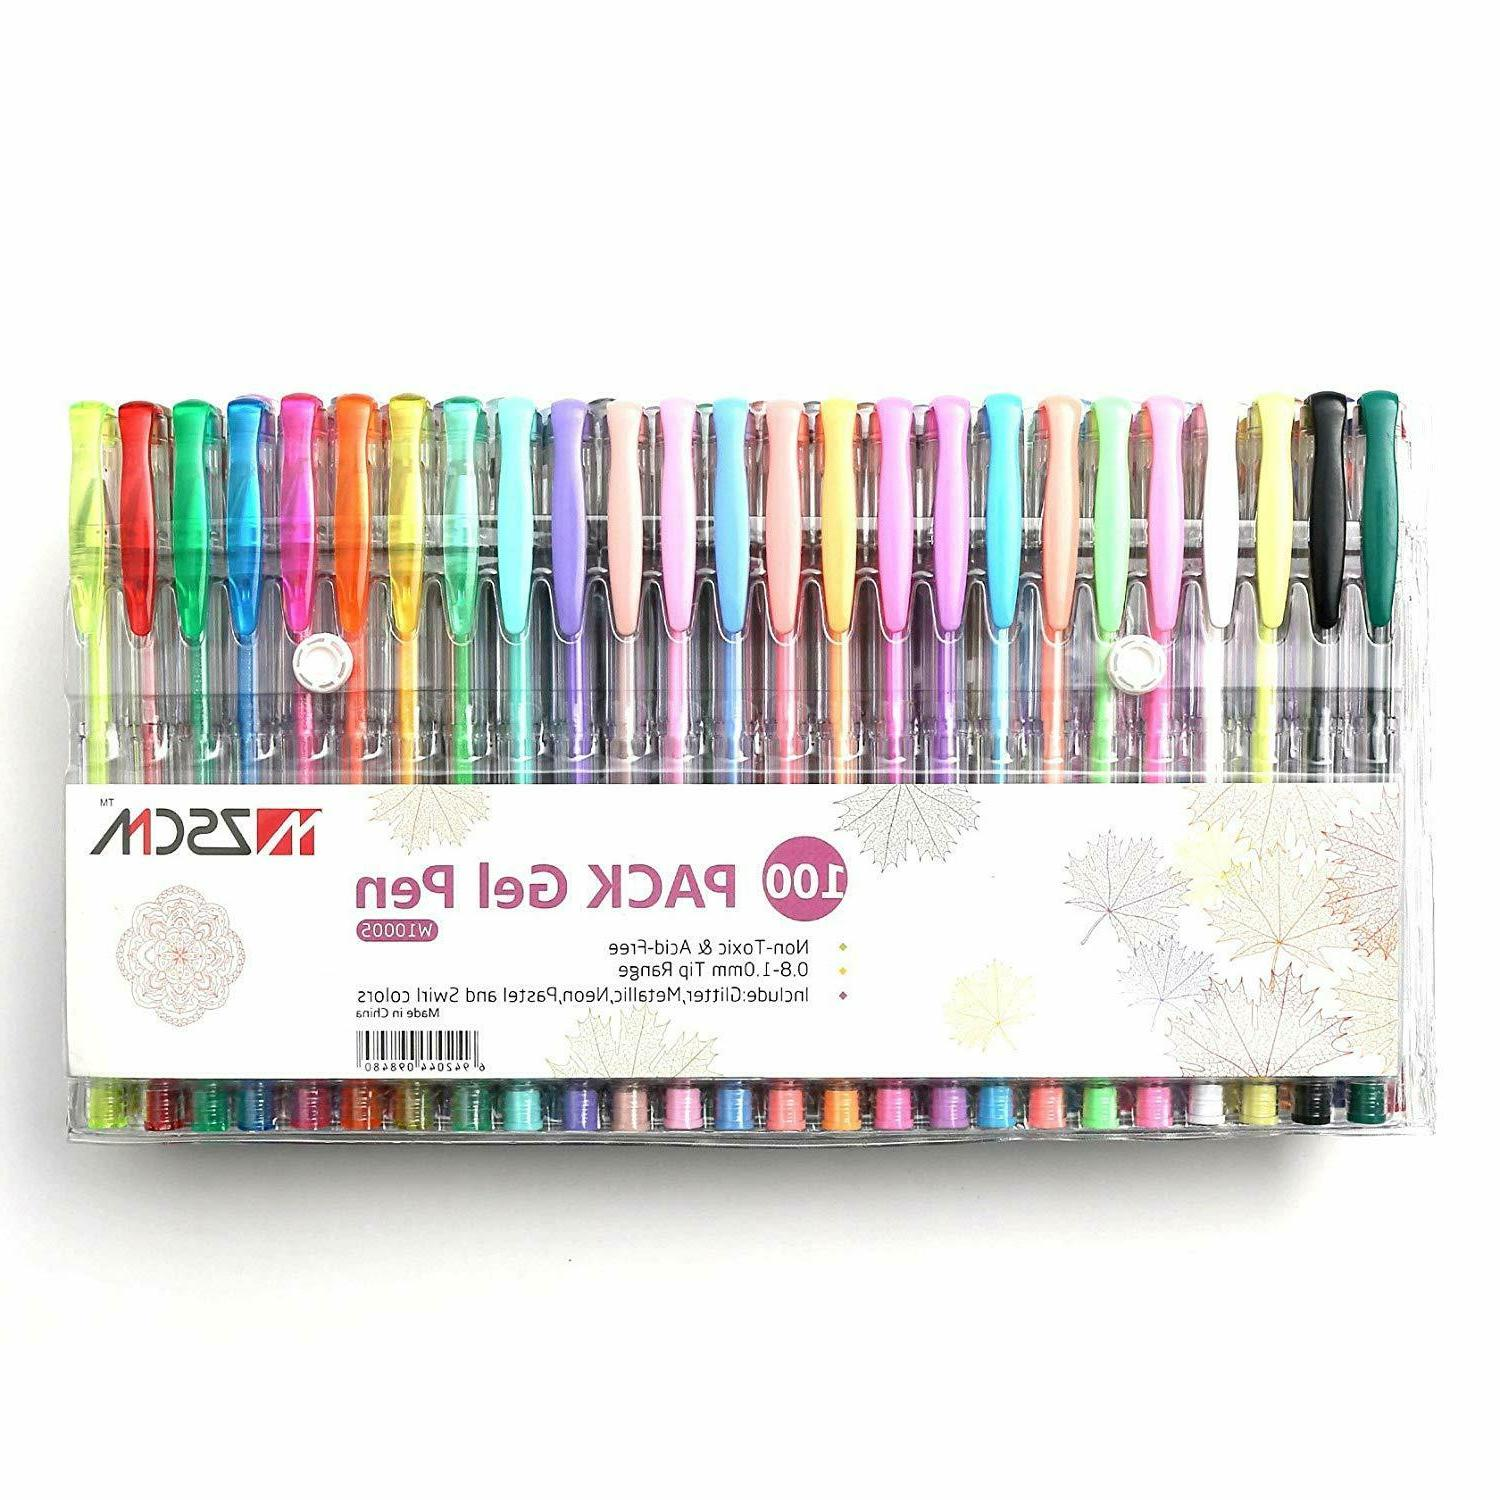 100 Pens Case Coloring Books Markers